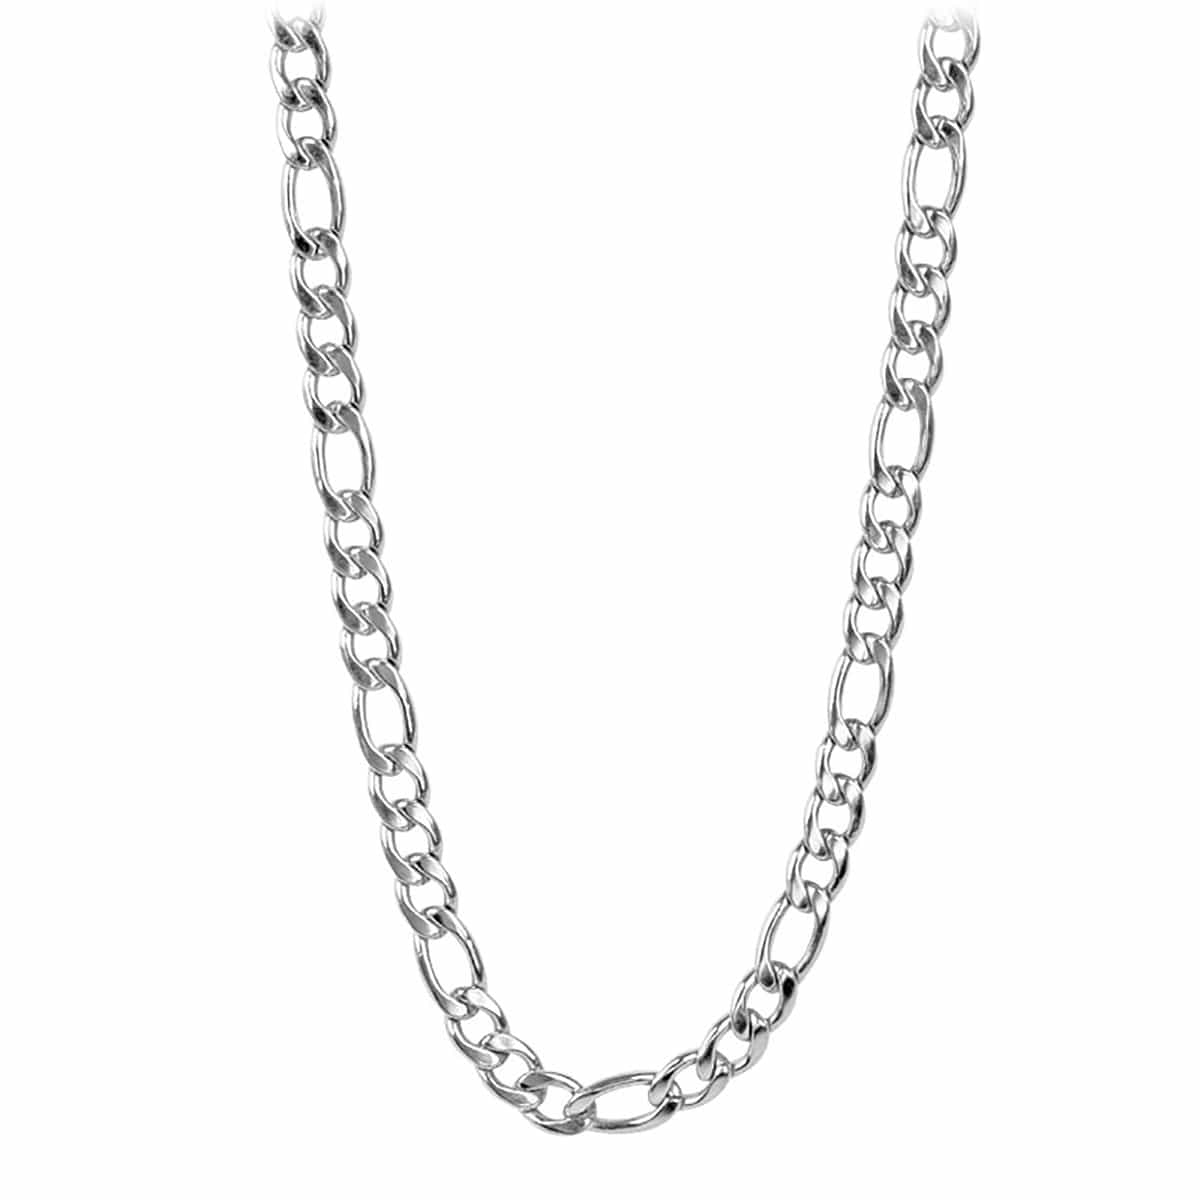 Silver Stainless Steel Polished 9mm Classic Figaro Chain Chains